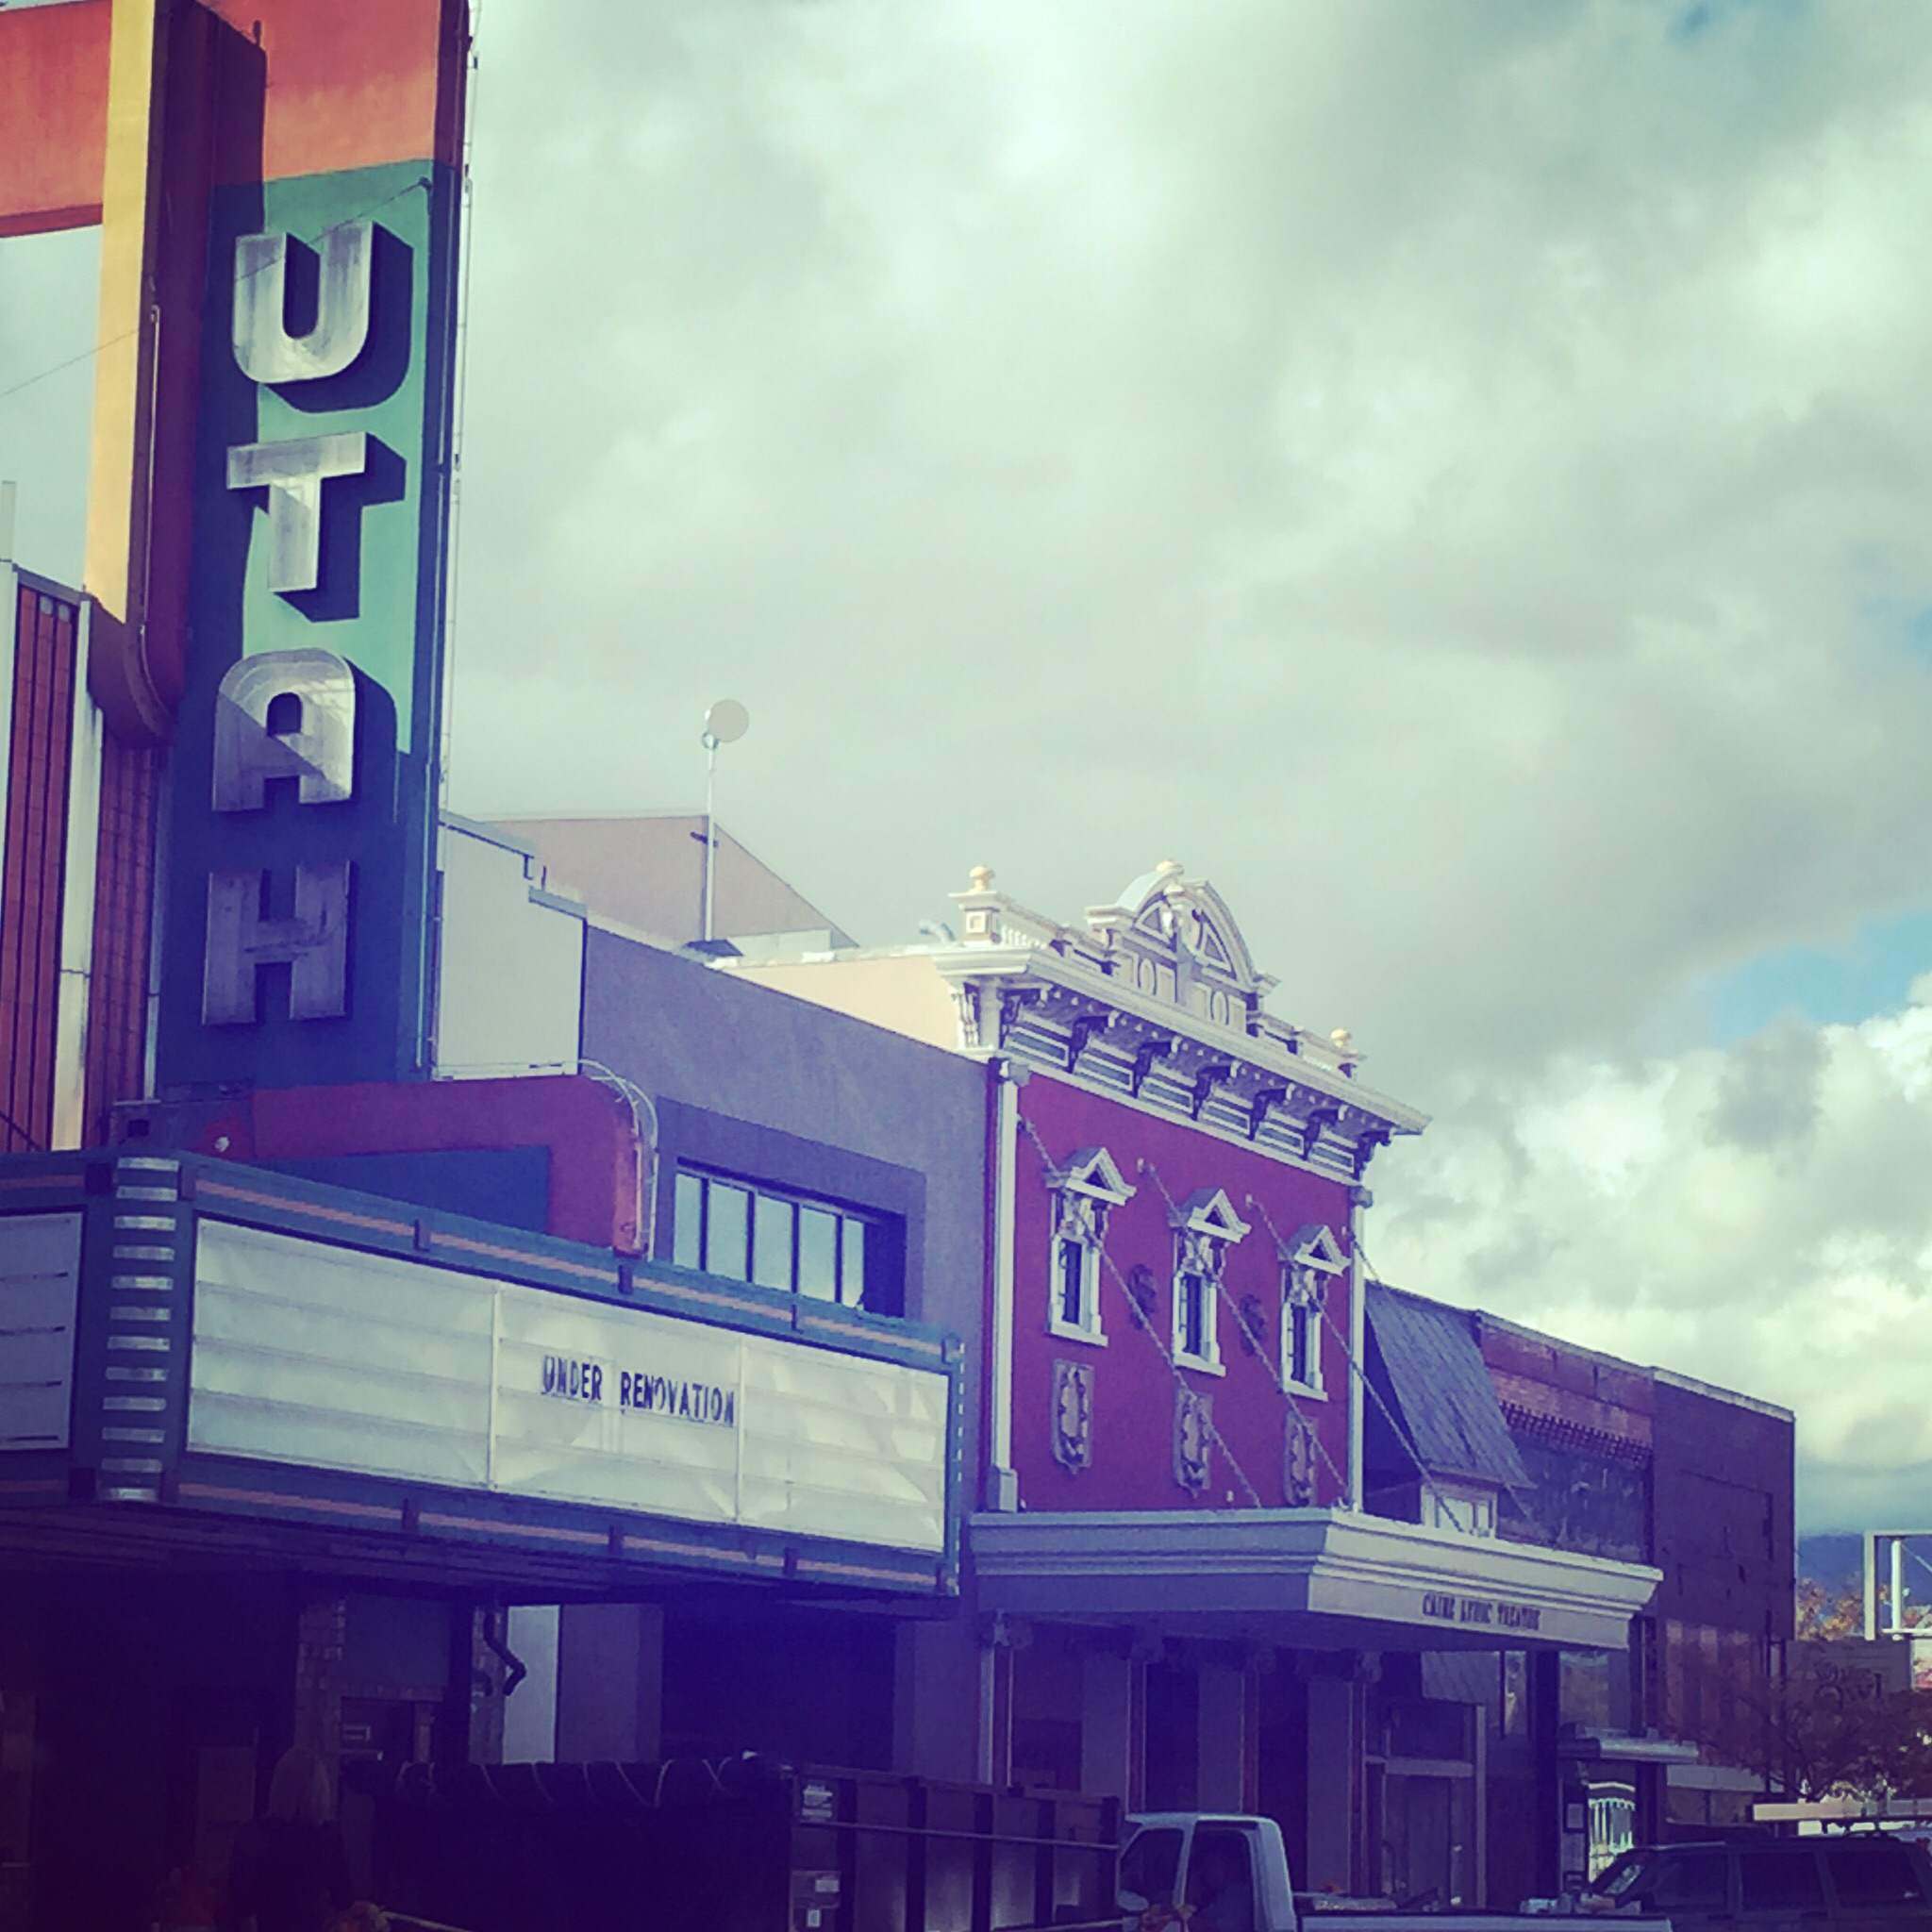 The Utah theater in downtown Logan